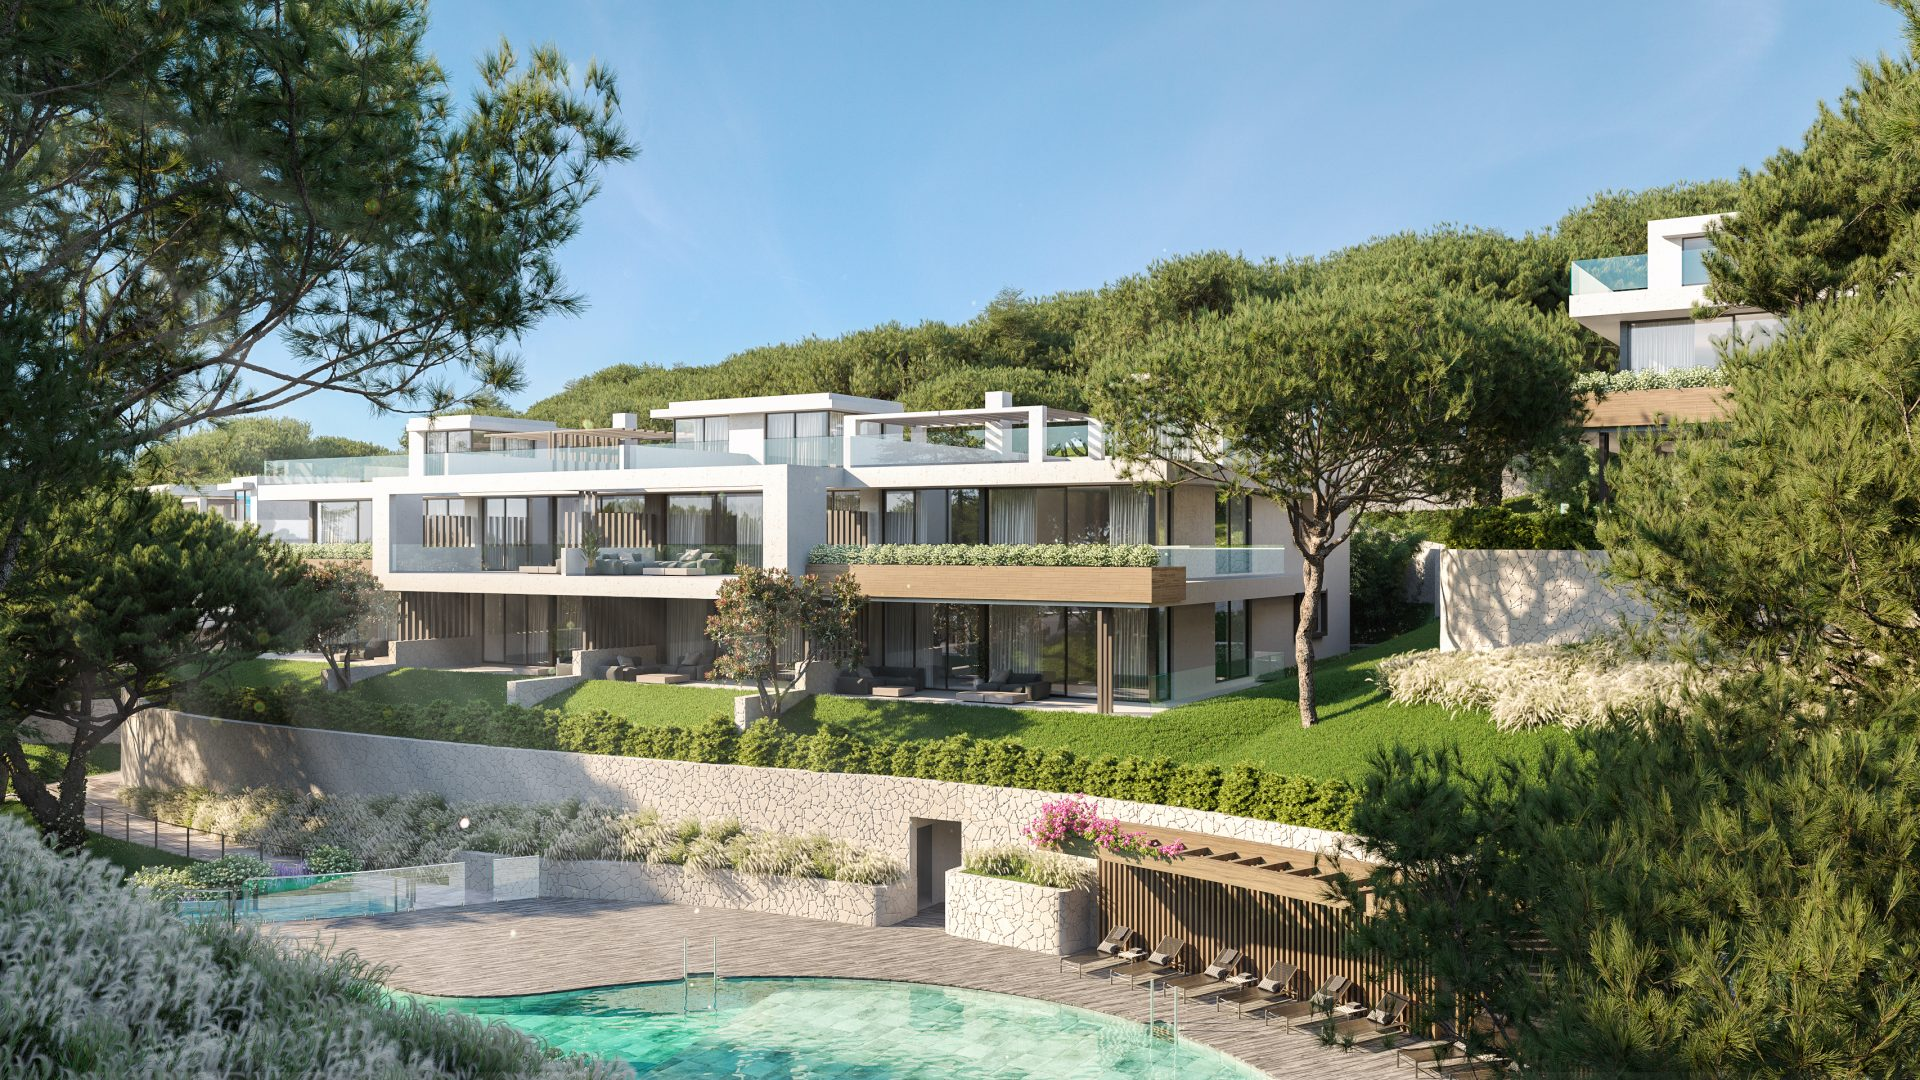 2 and 3 bedrooms apartments and penthouses in Marbella, Cabopino